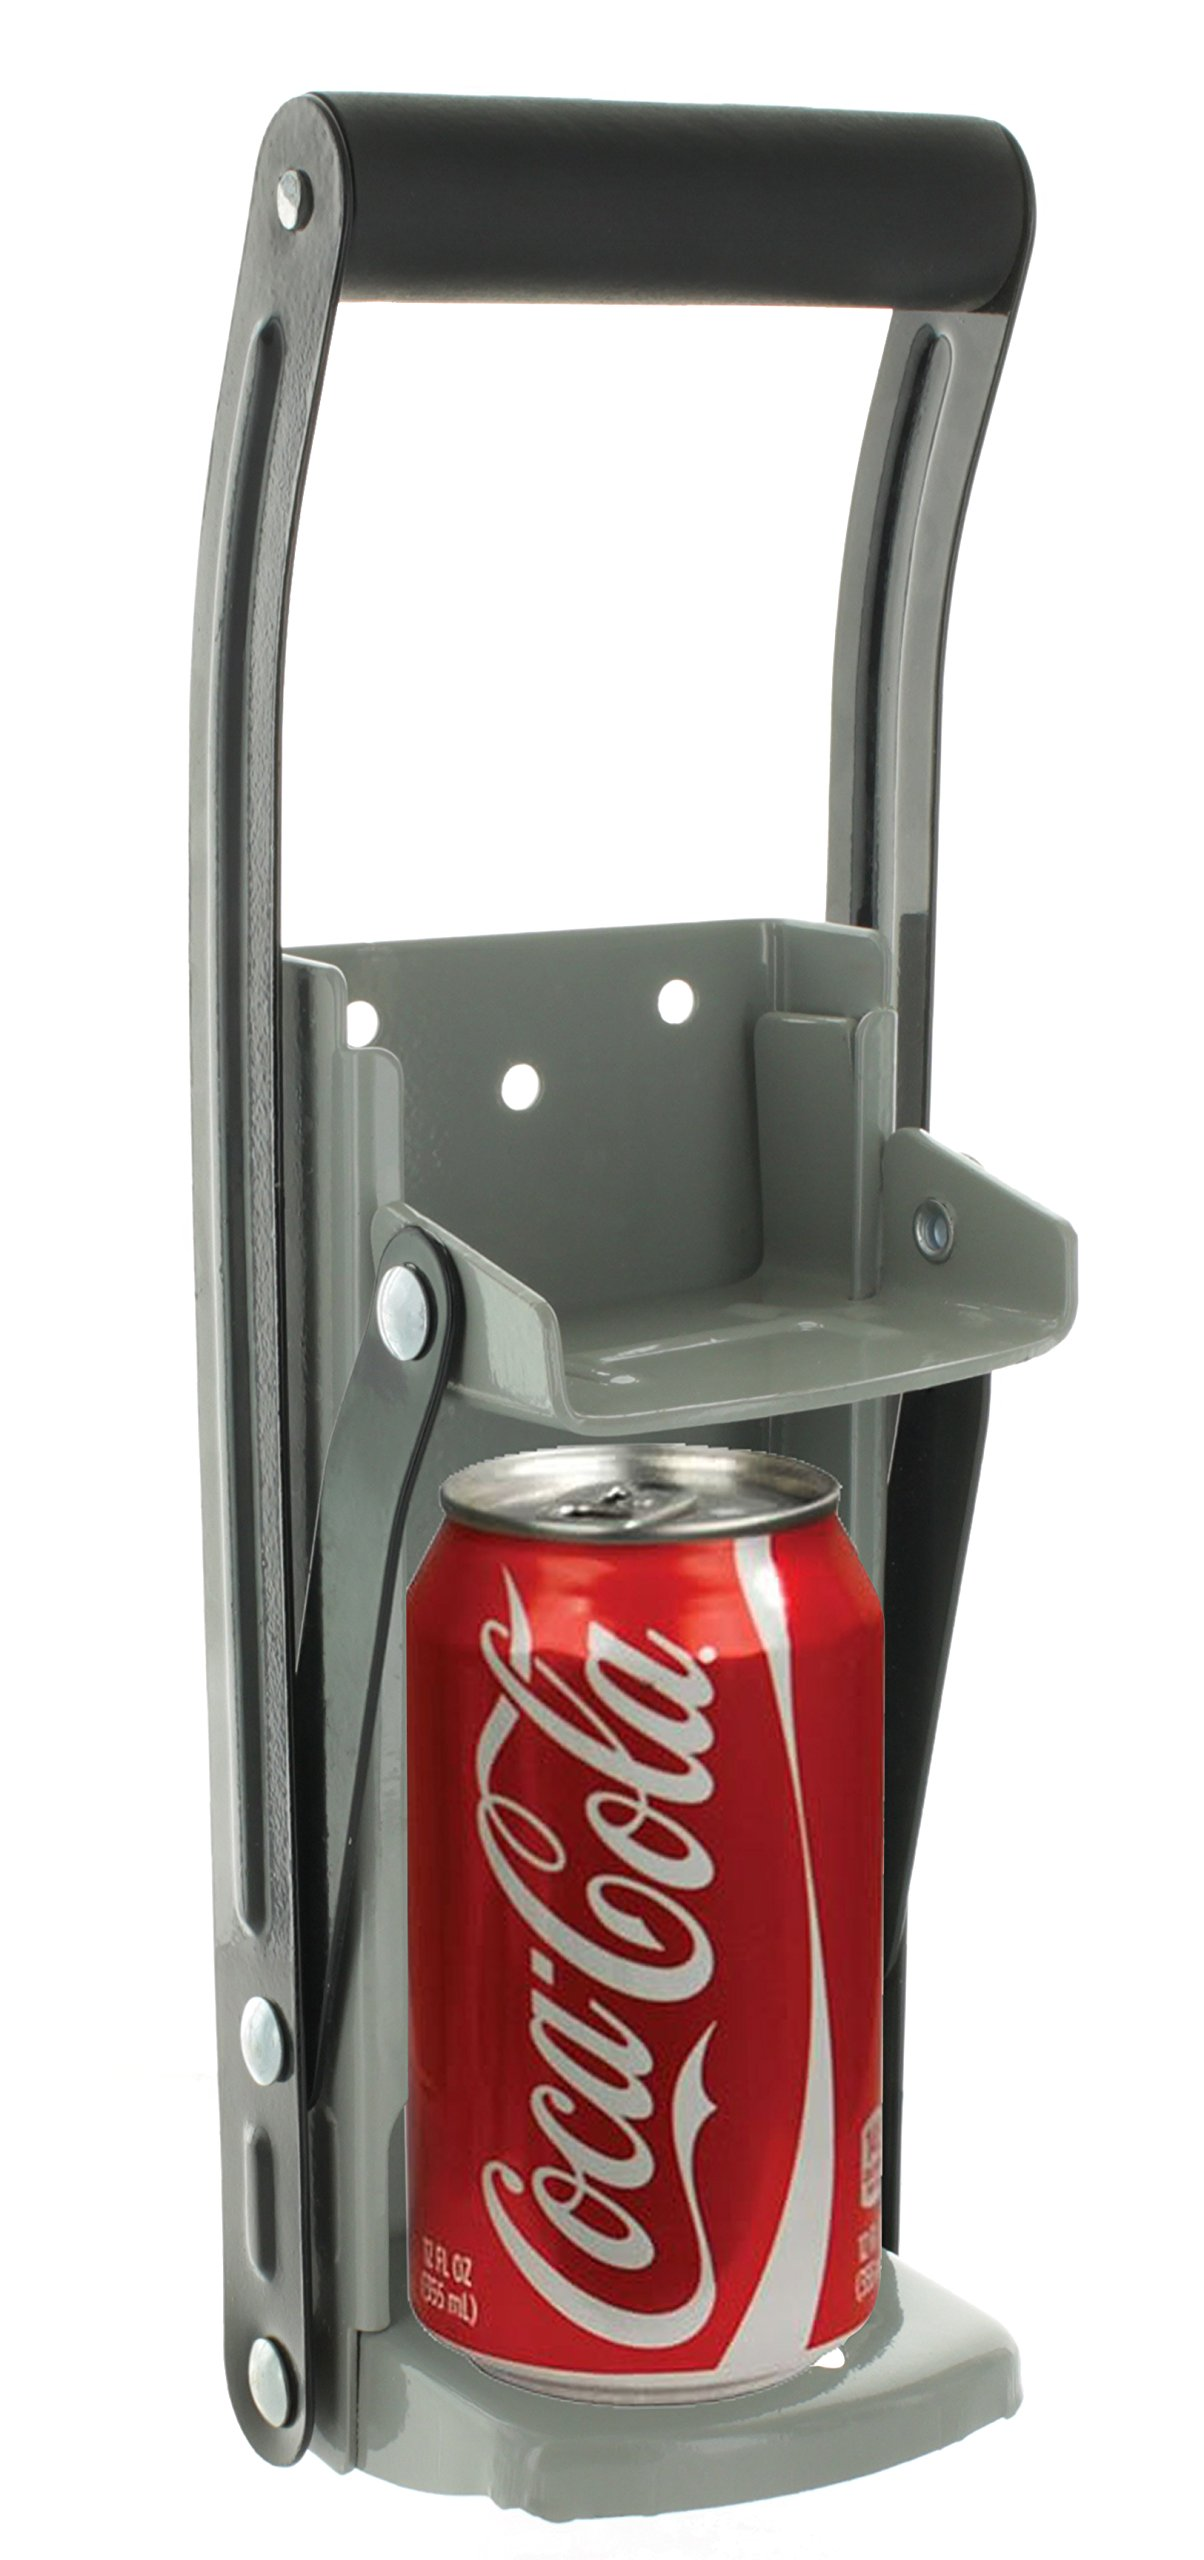 Ram-Pro 12 oz Aluminum Can Crusher & Bottle Opener | Heavy Duty Metal Wall Mounted Soda Beer Smasher - Eco-Friendly Recycling Tool by Ram-Pro